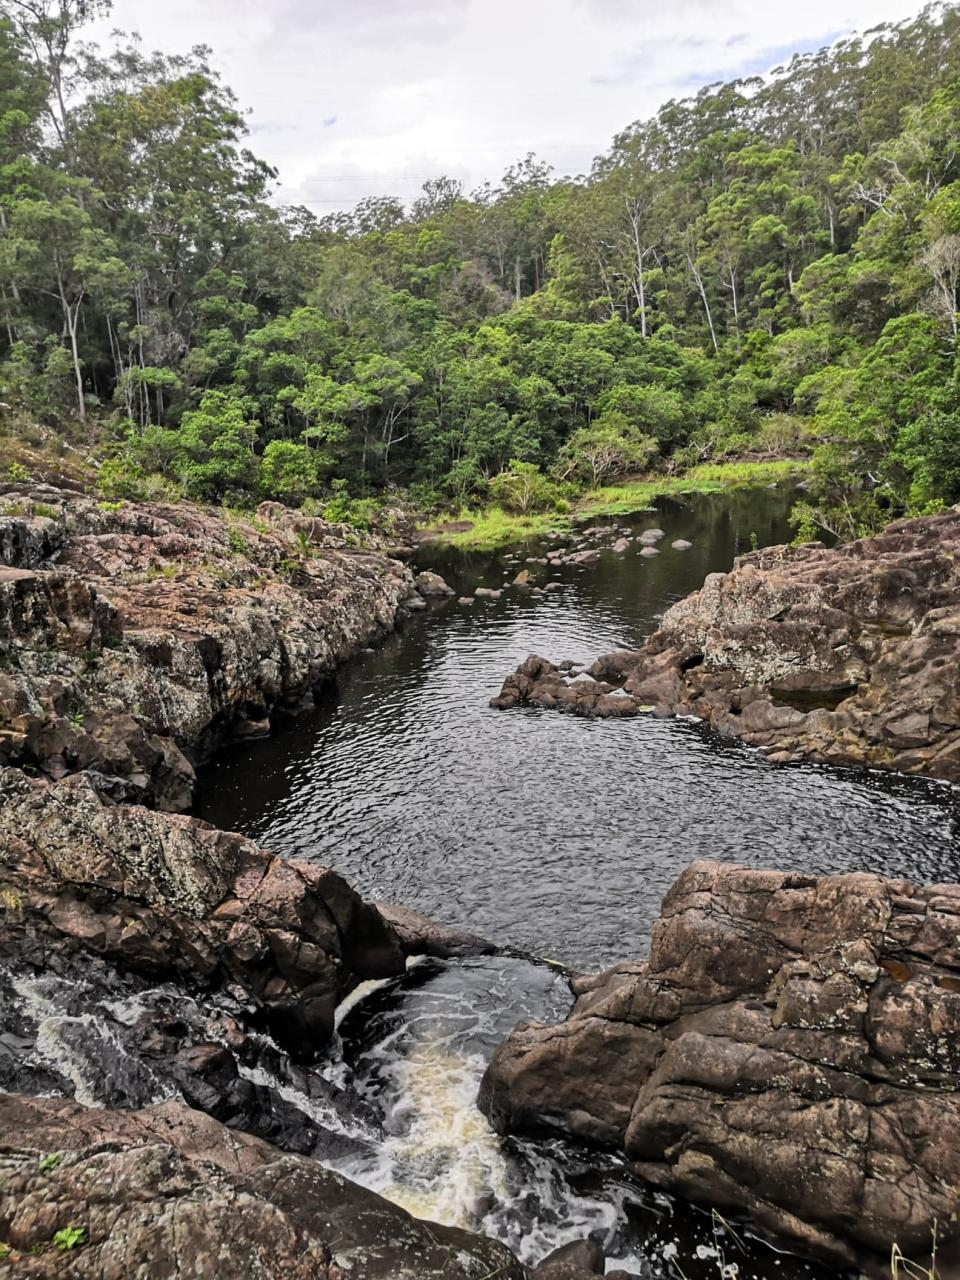 Todd Dent and Javier Pastor de Frutos came across a dead platypus at Sunshine Coast's Wappa Falls.